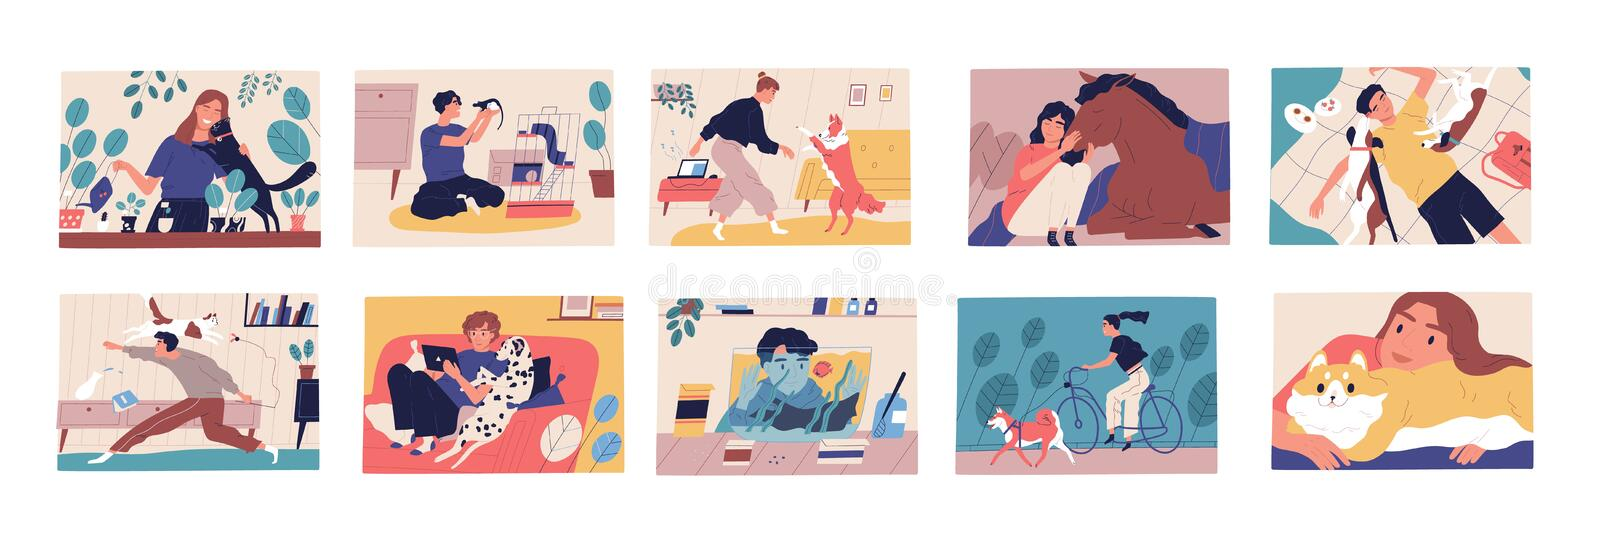 Bundle of scenes with pet owners. Collection of cute funny men and women spending time with their domestic animals. Walking, cuddling and playing with them vector illustration